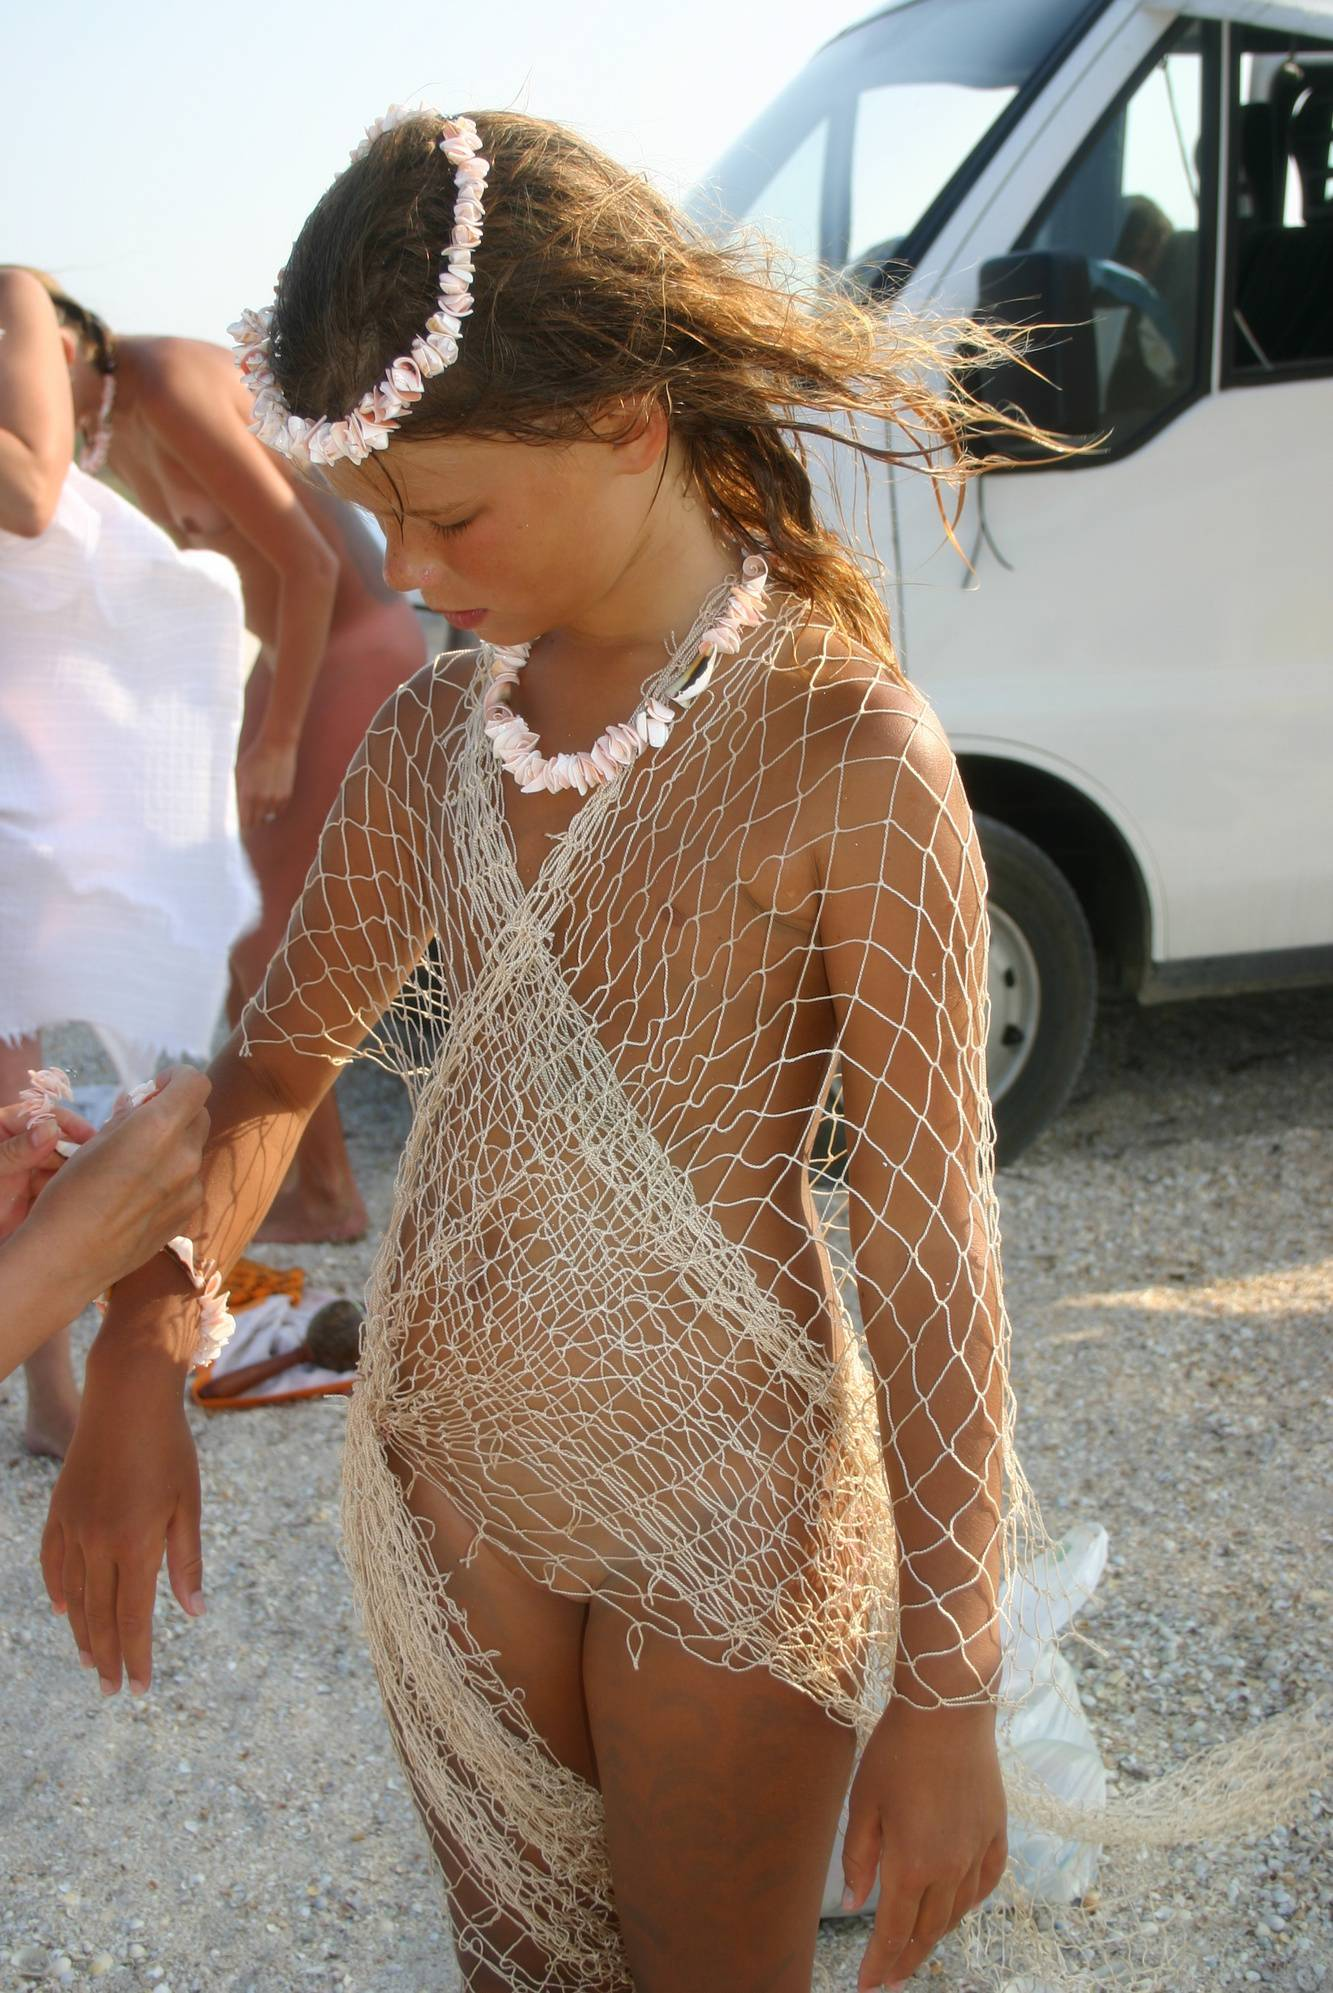 Purenudism Images-Young Beach Fishing Nets - 1